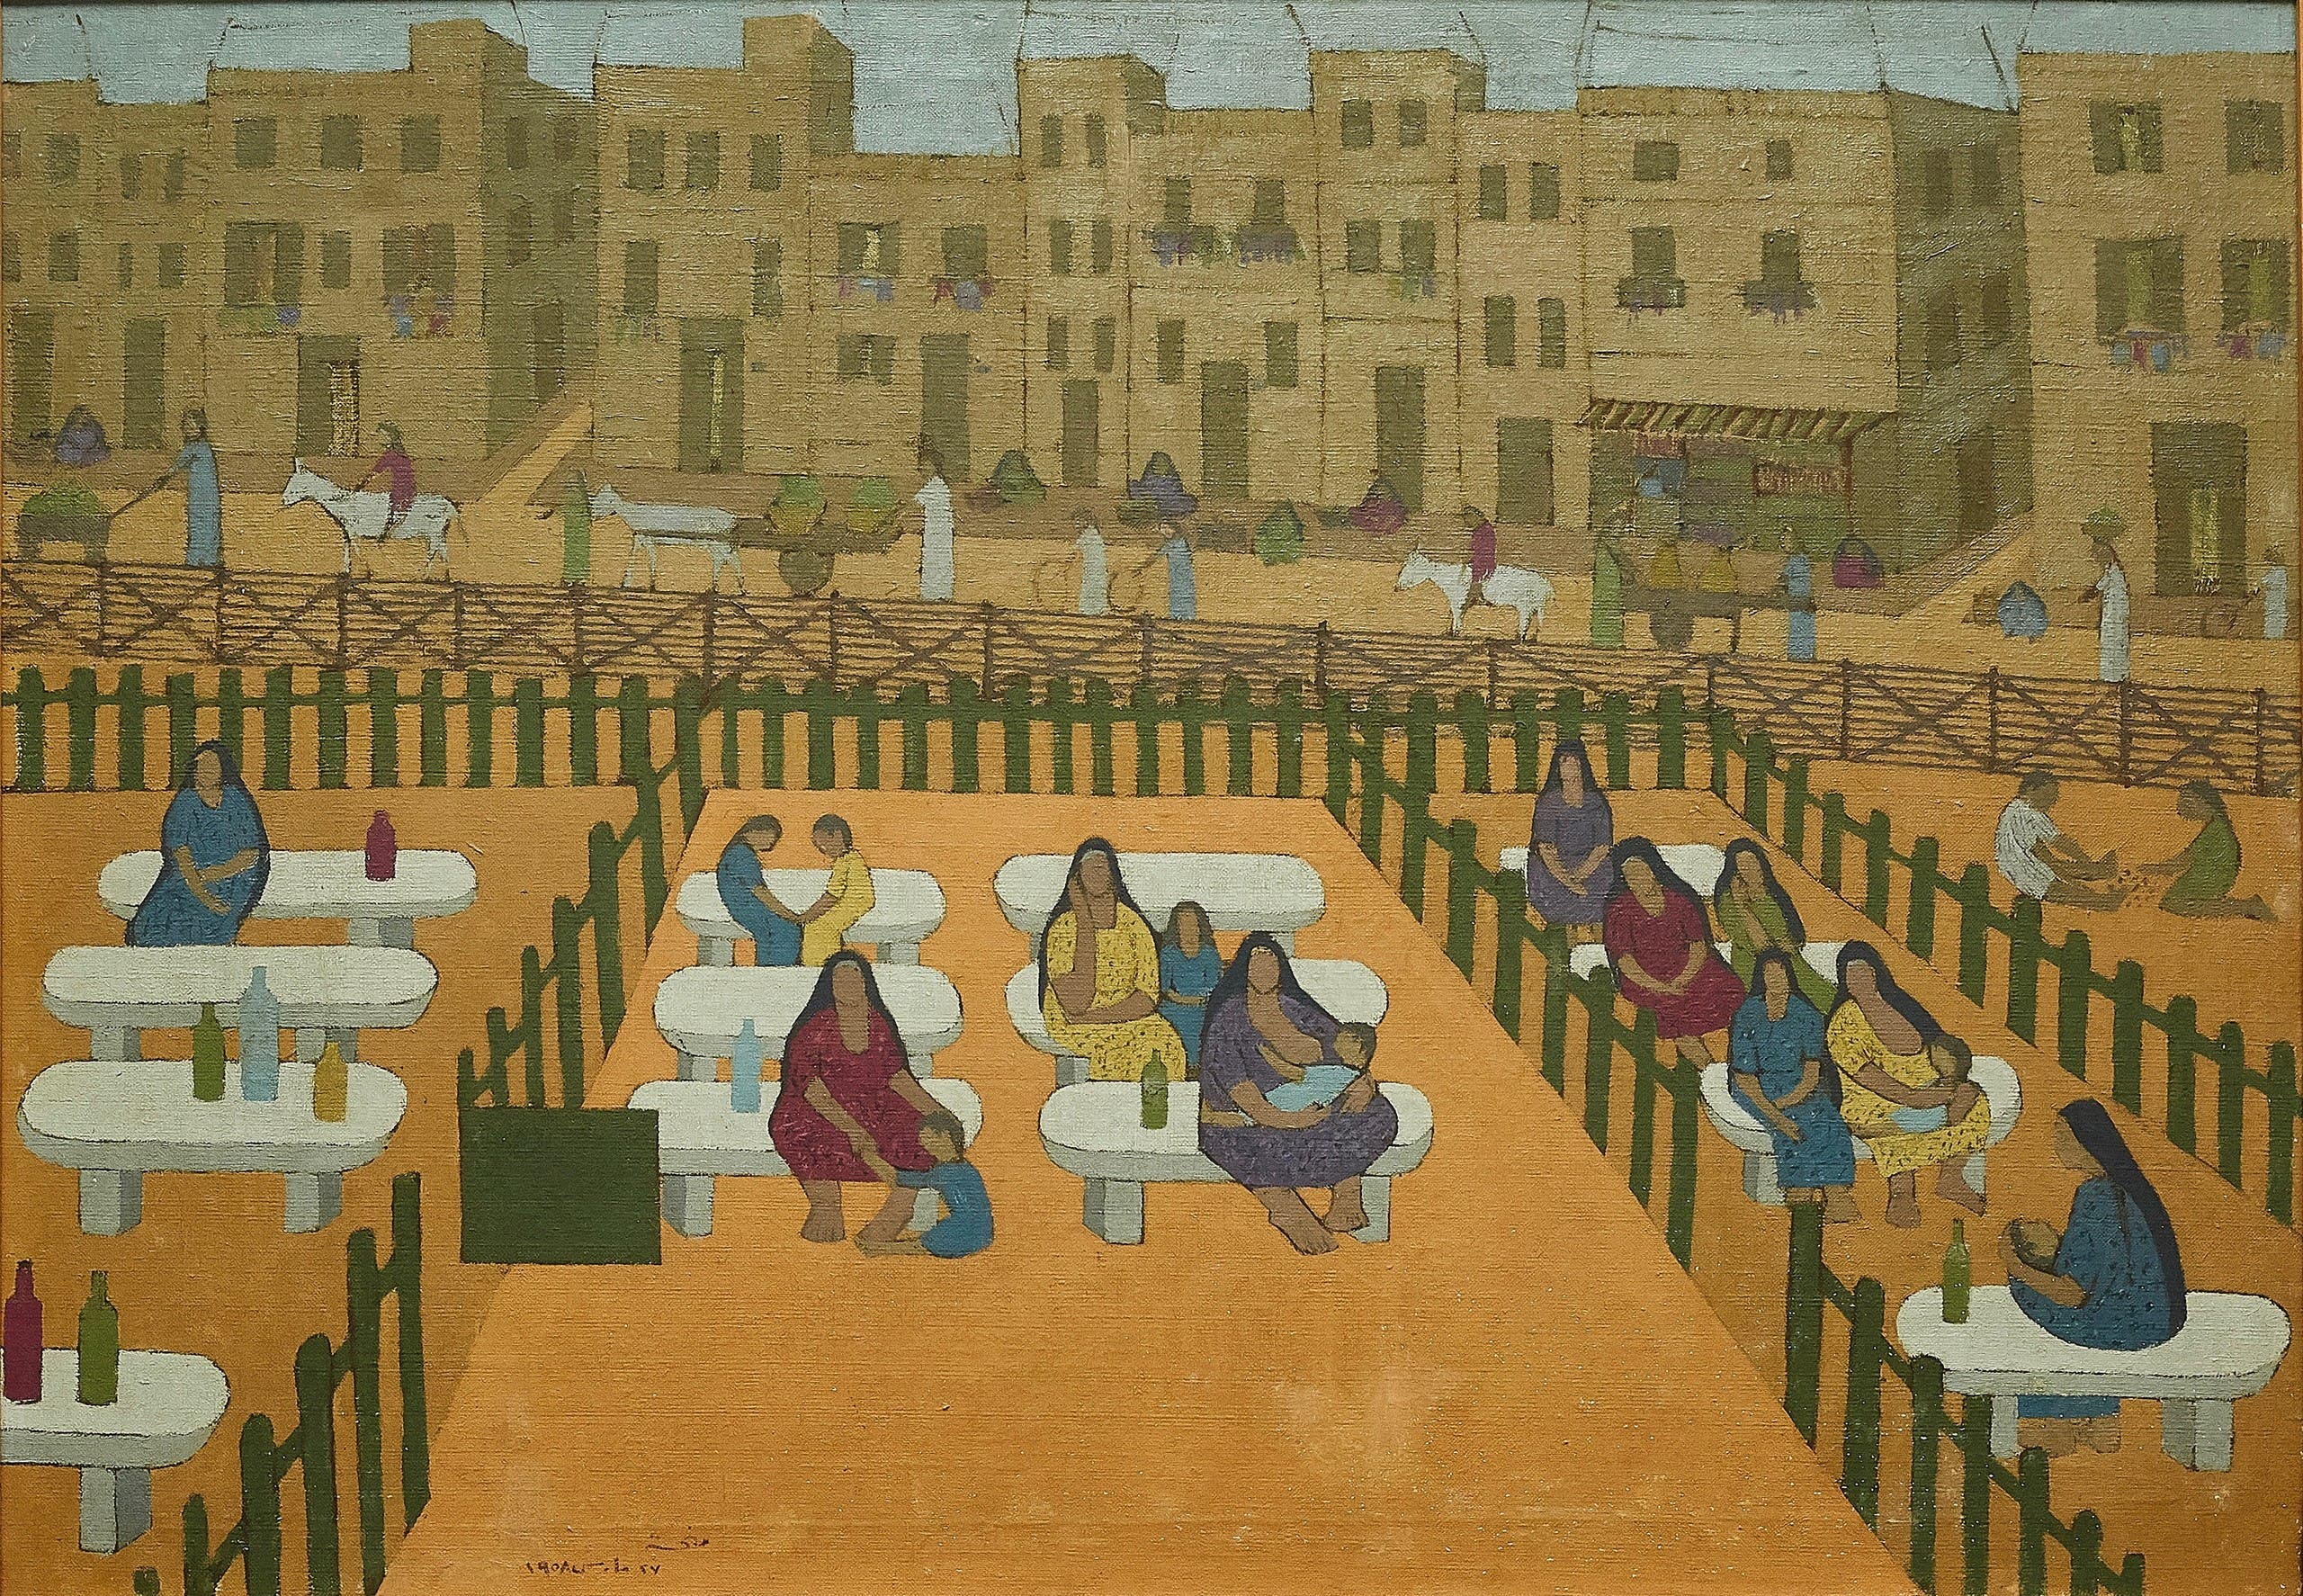 Menhat Helmy, Outpatient Clinic, 1958, Oil on canvas, 66 x 80 cm. Image courtesy of Barjeel Art Foundation, Sharjah.)